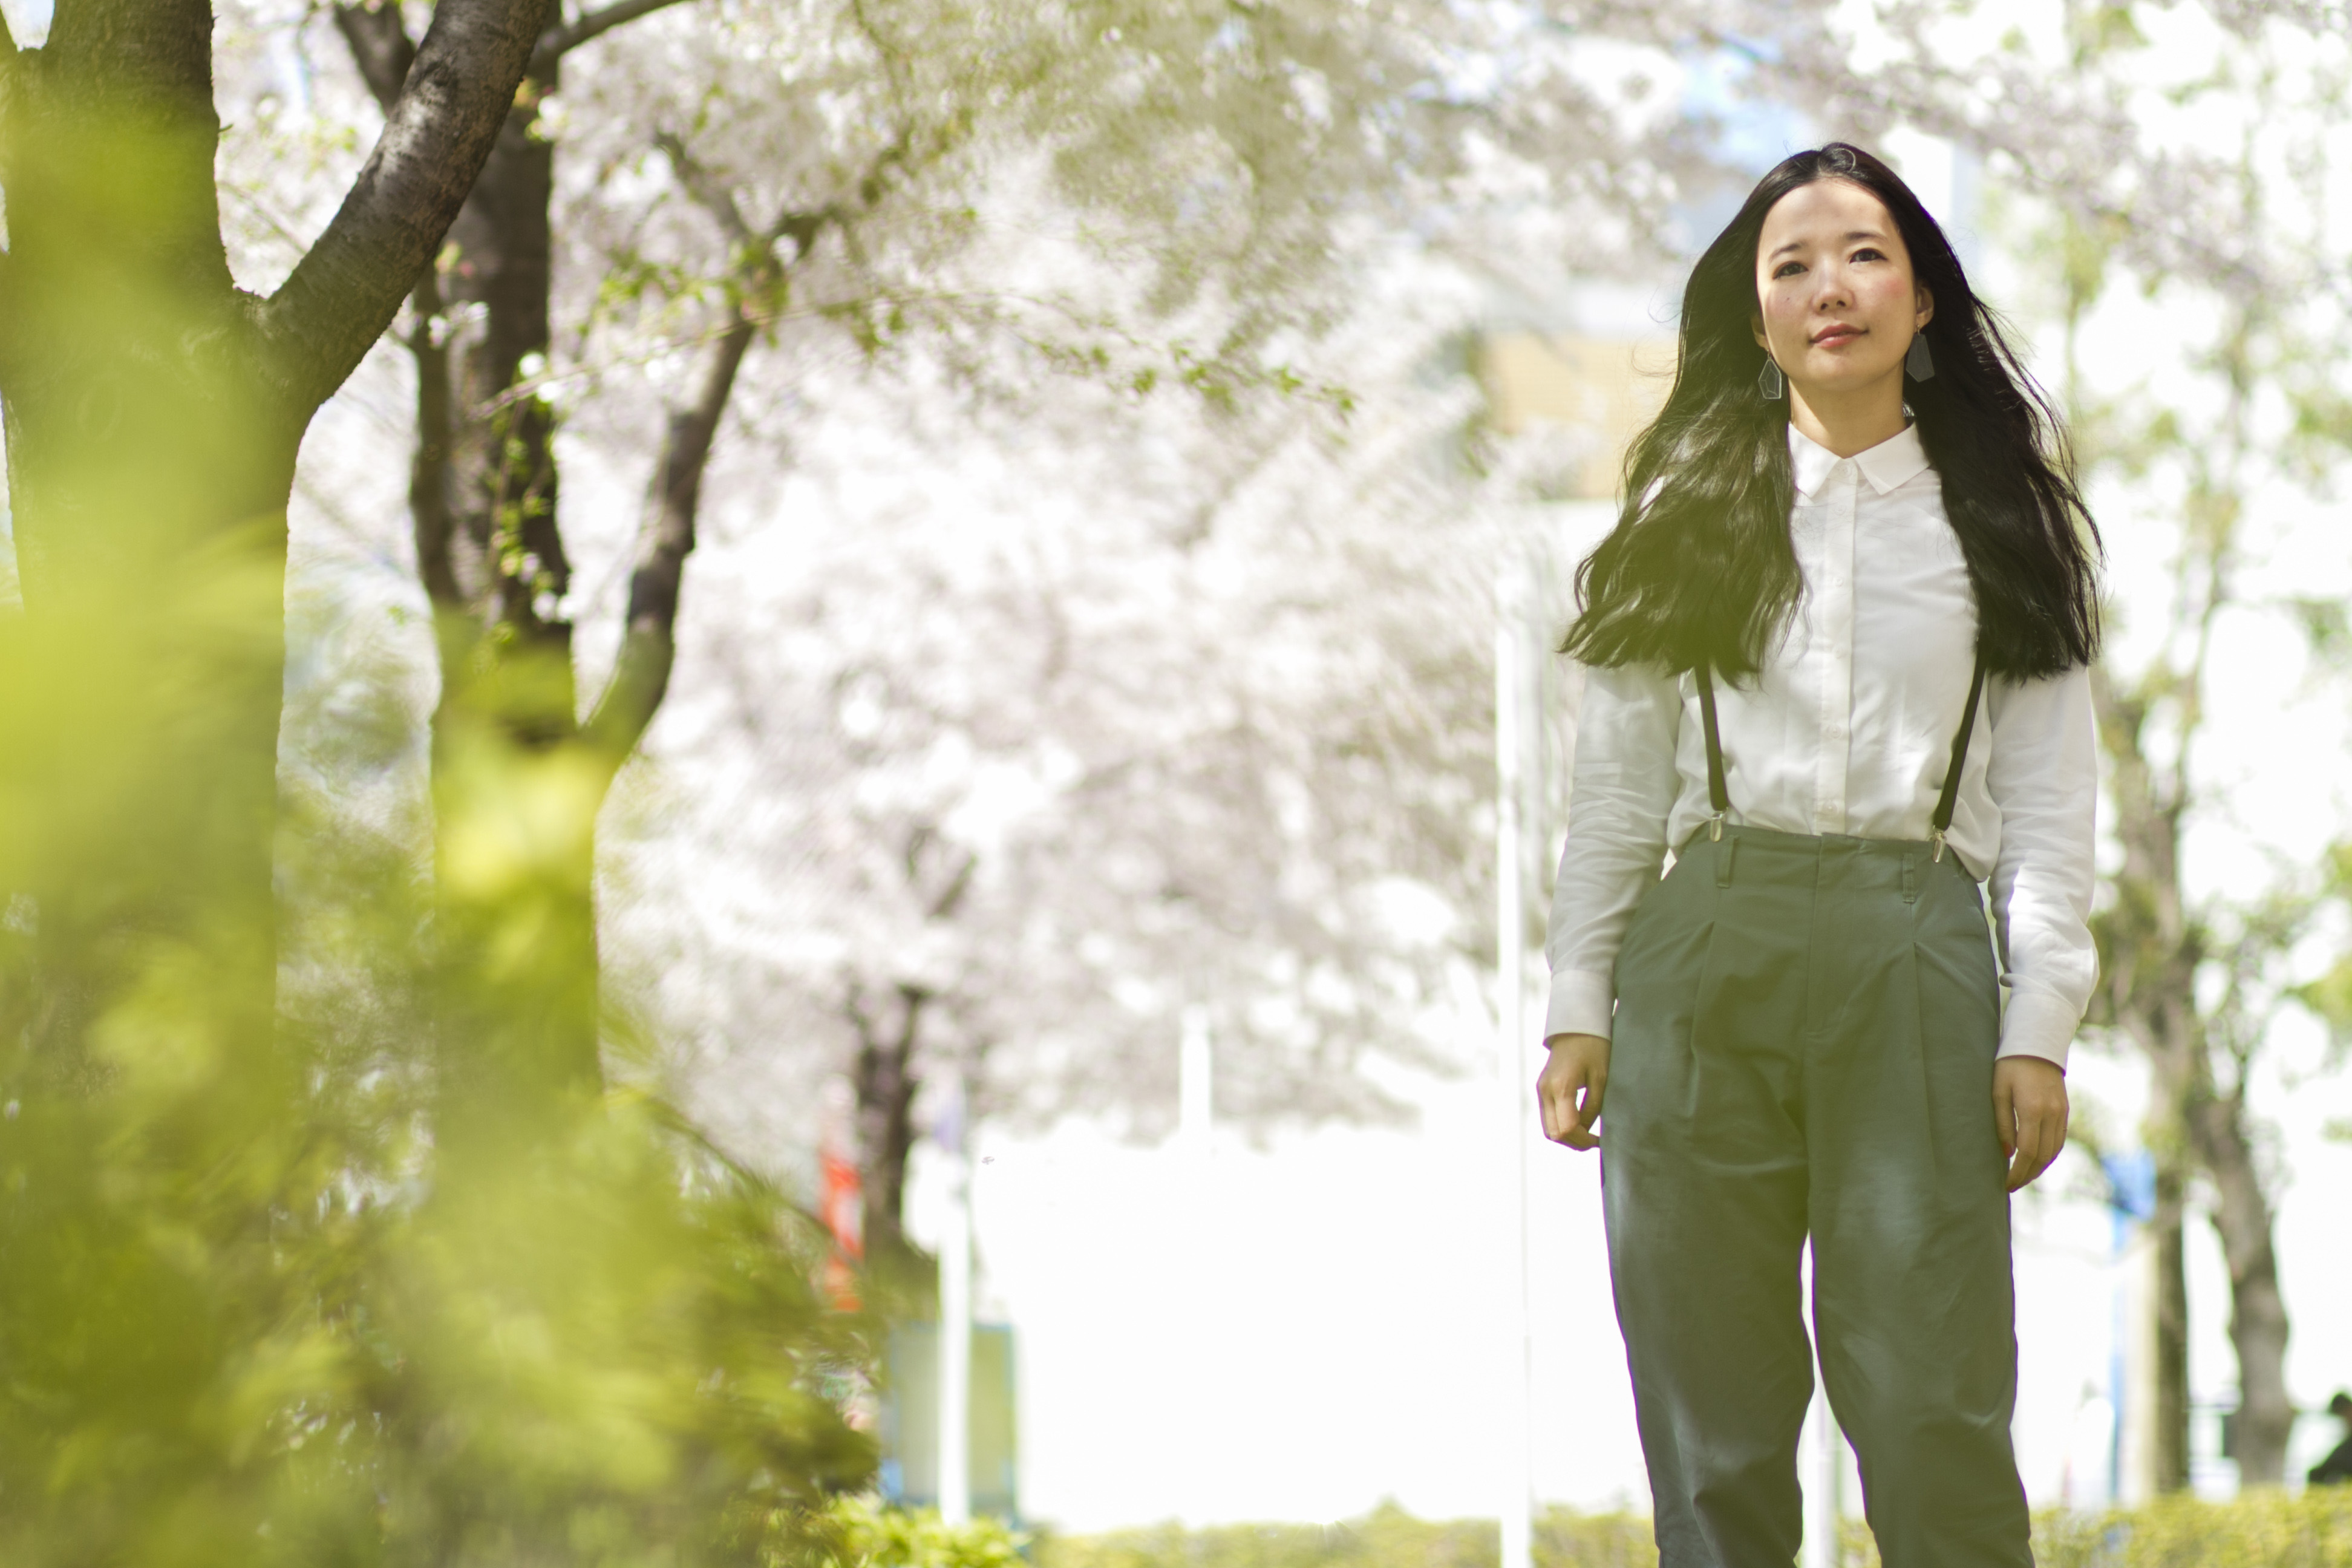 Shout it out: Mayuko Hitotsuyanagi, aka Cuushe, has begun to perform her ethereal pop songs with unexpected gusto. | JAMES HADFIELD